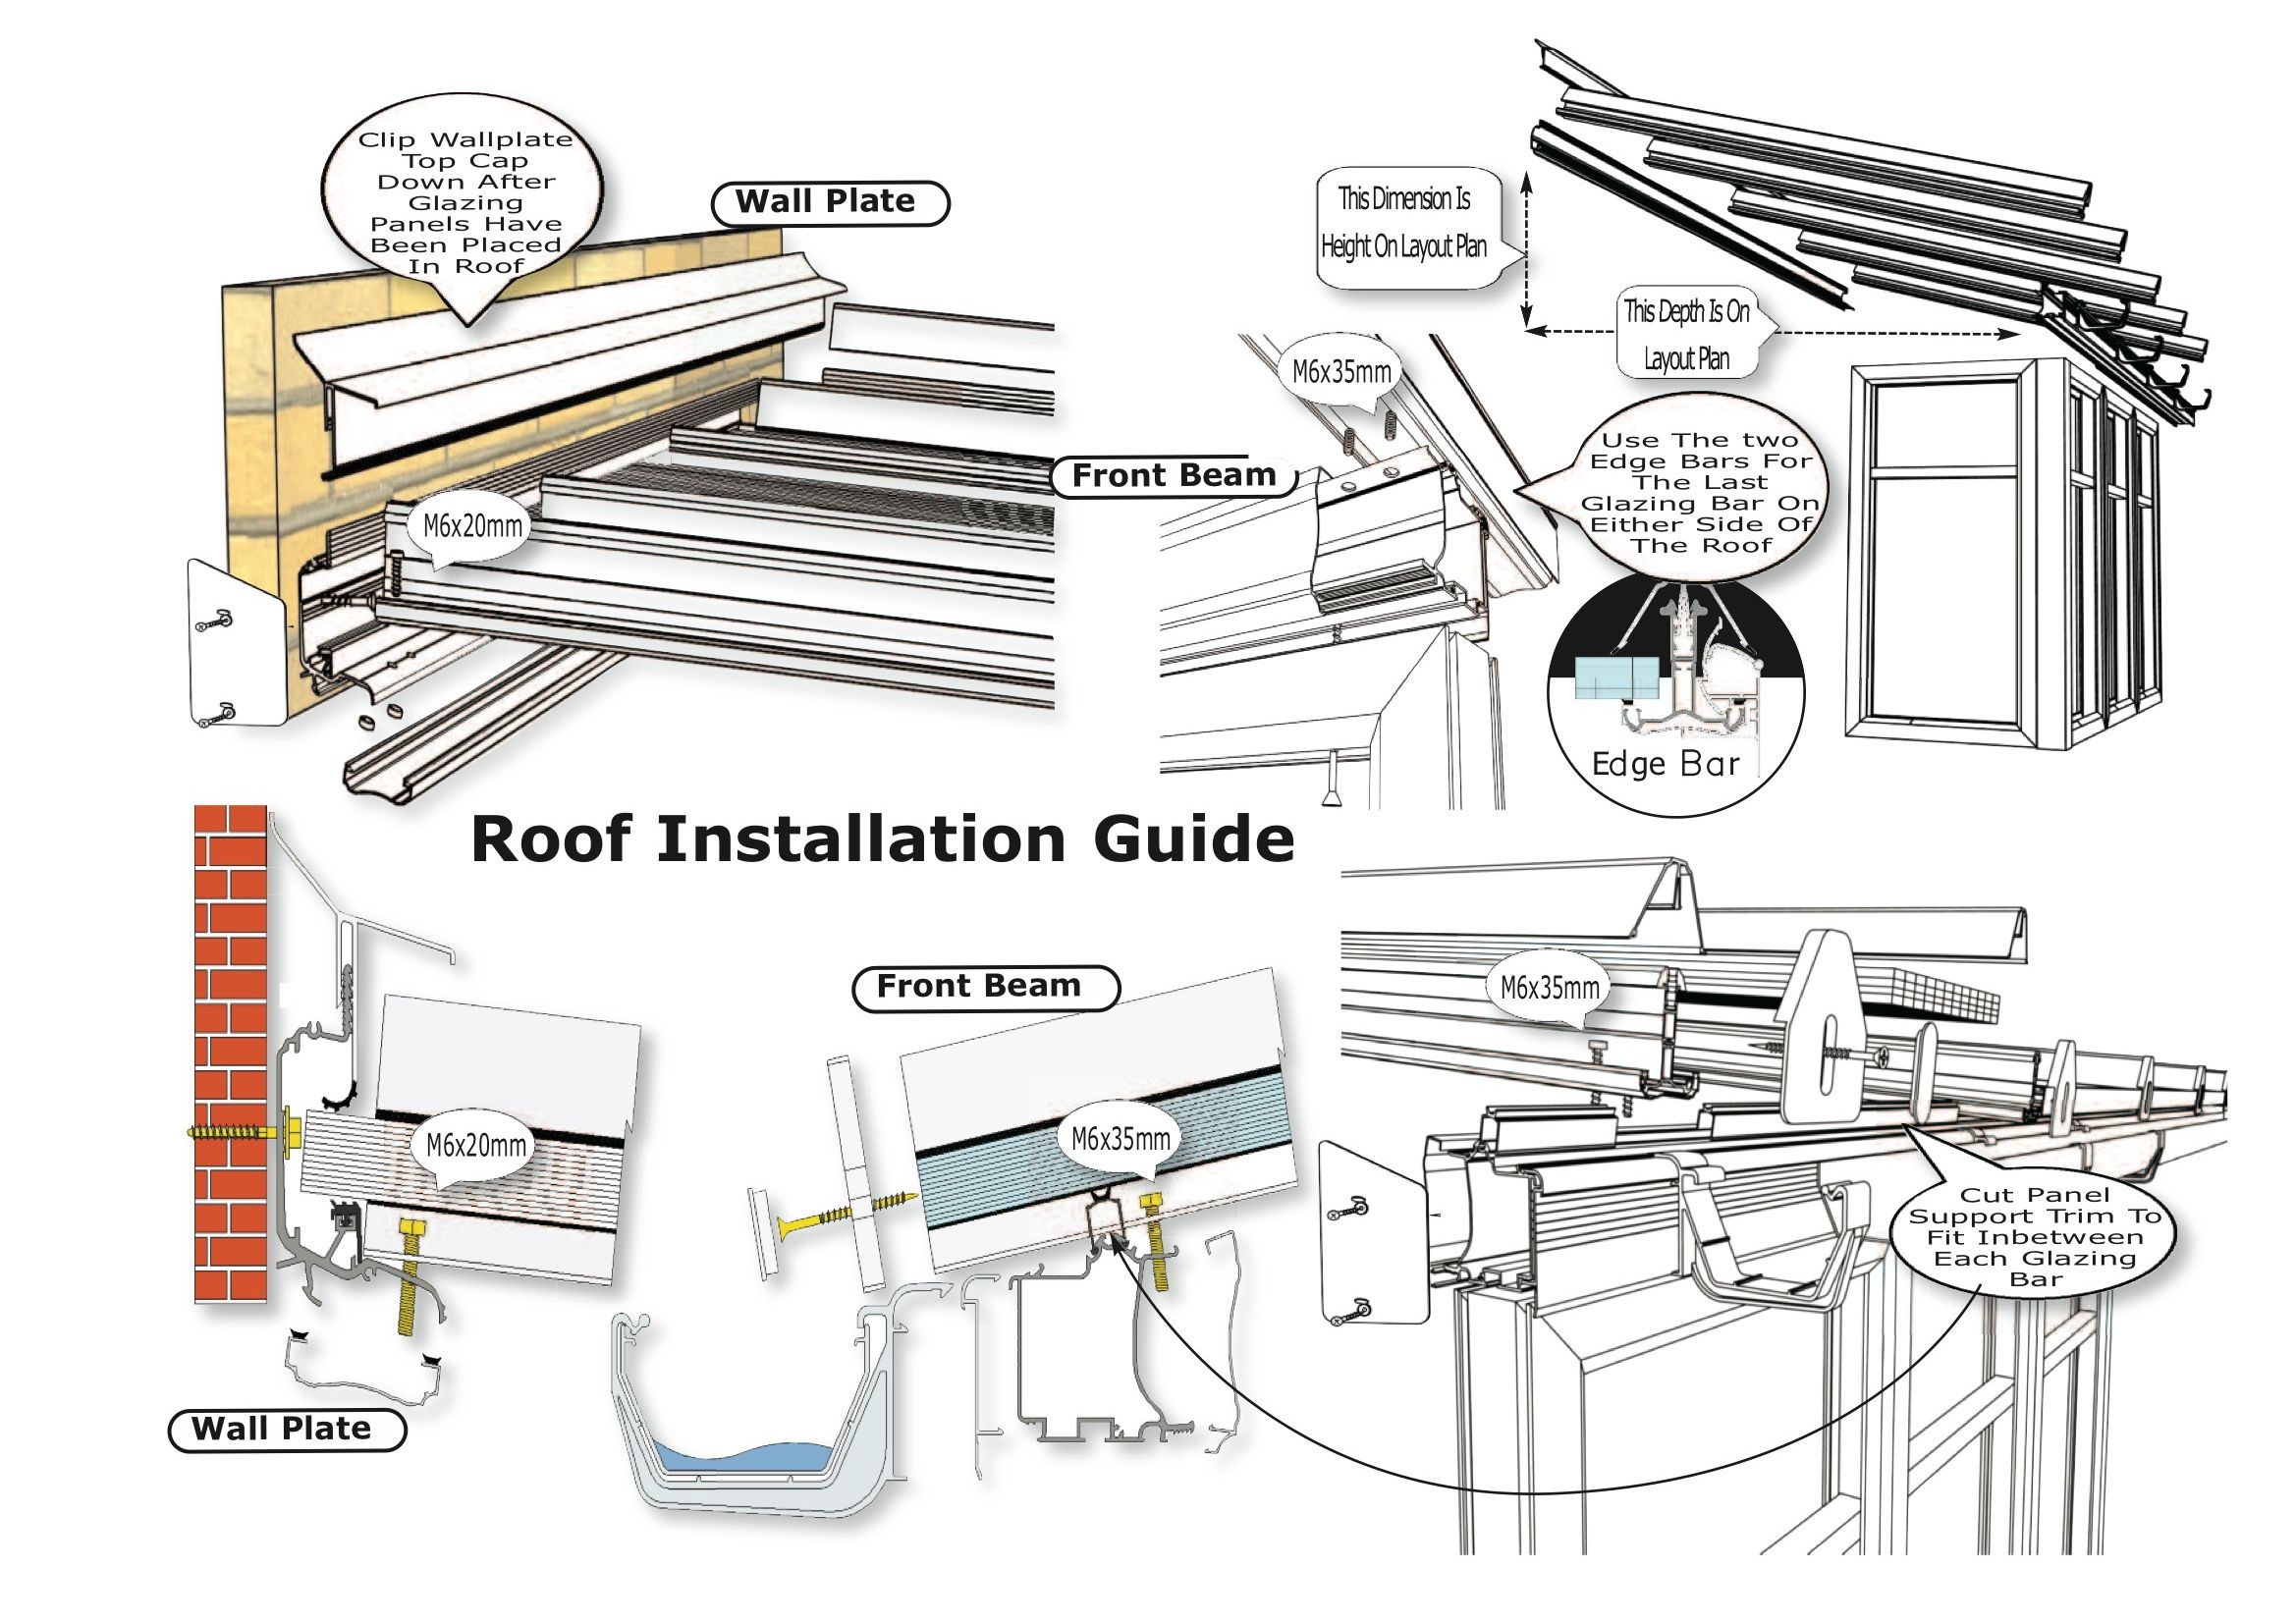 Eaves Beam For Self Support Roof Varico In 2020 Roof Roof Installation Roof Edge